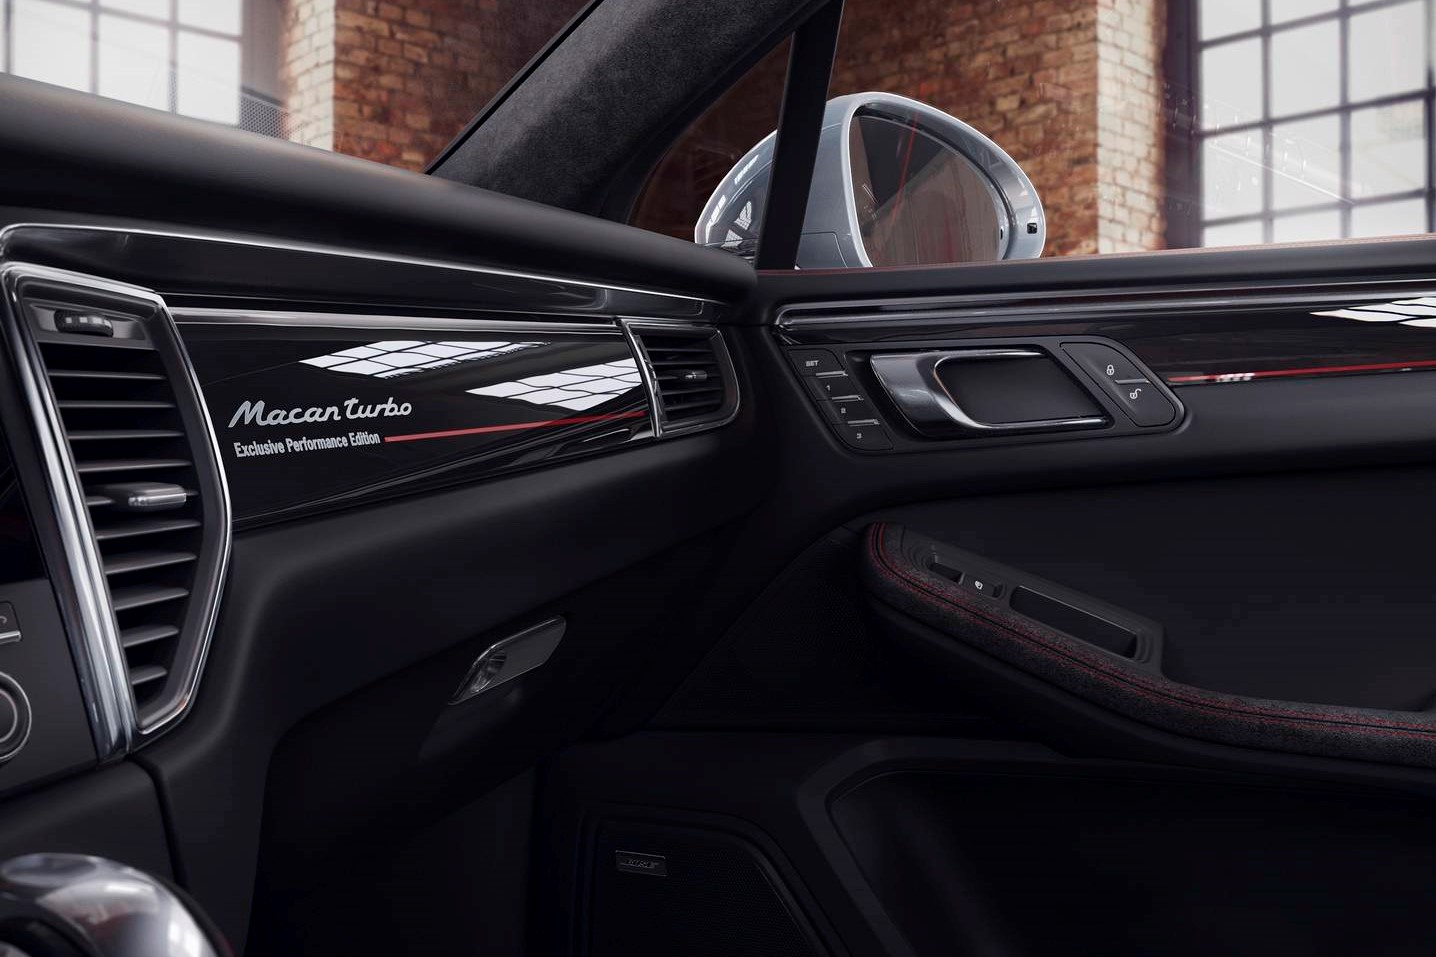 The Porsche Macan Turbo Now Has An Exclusive Performance